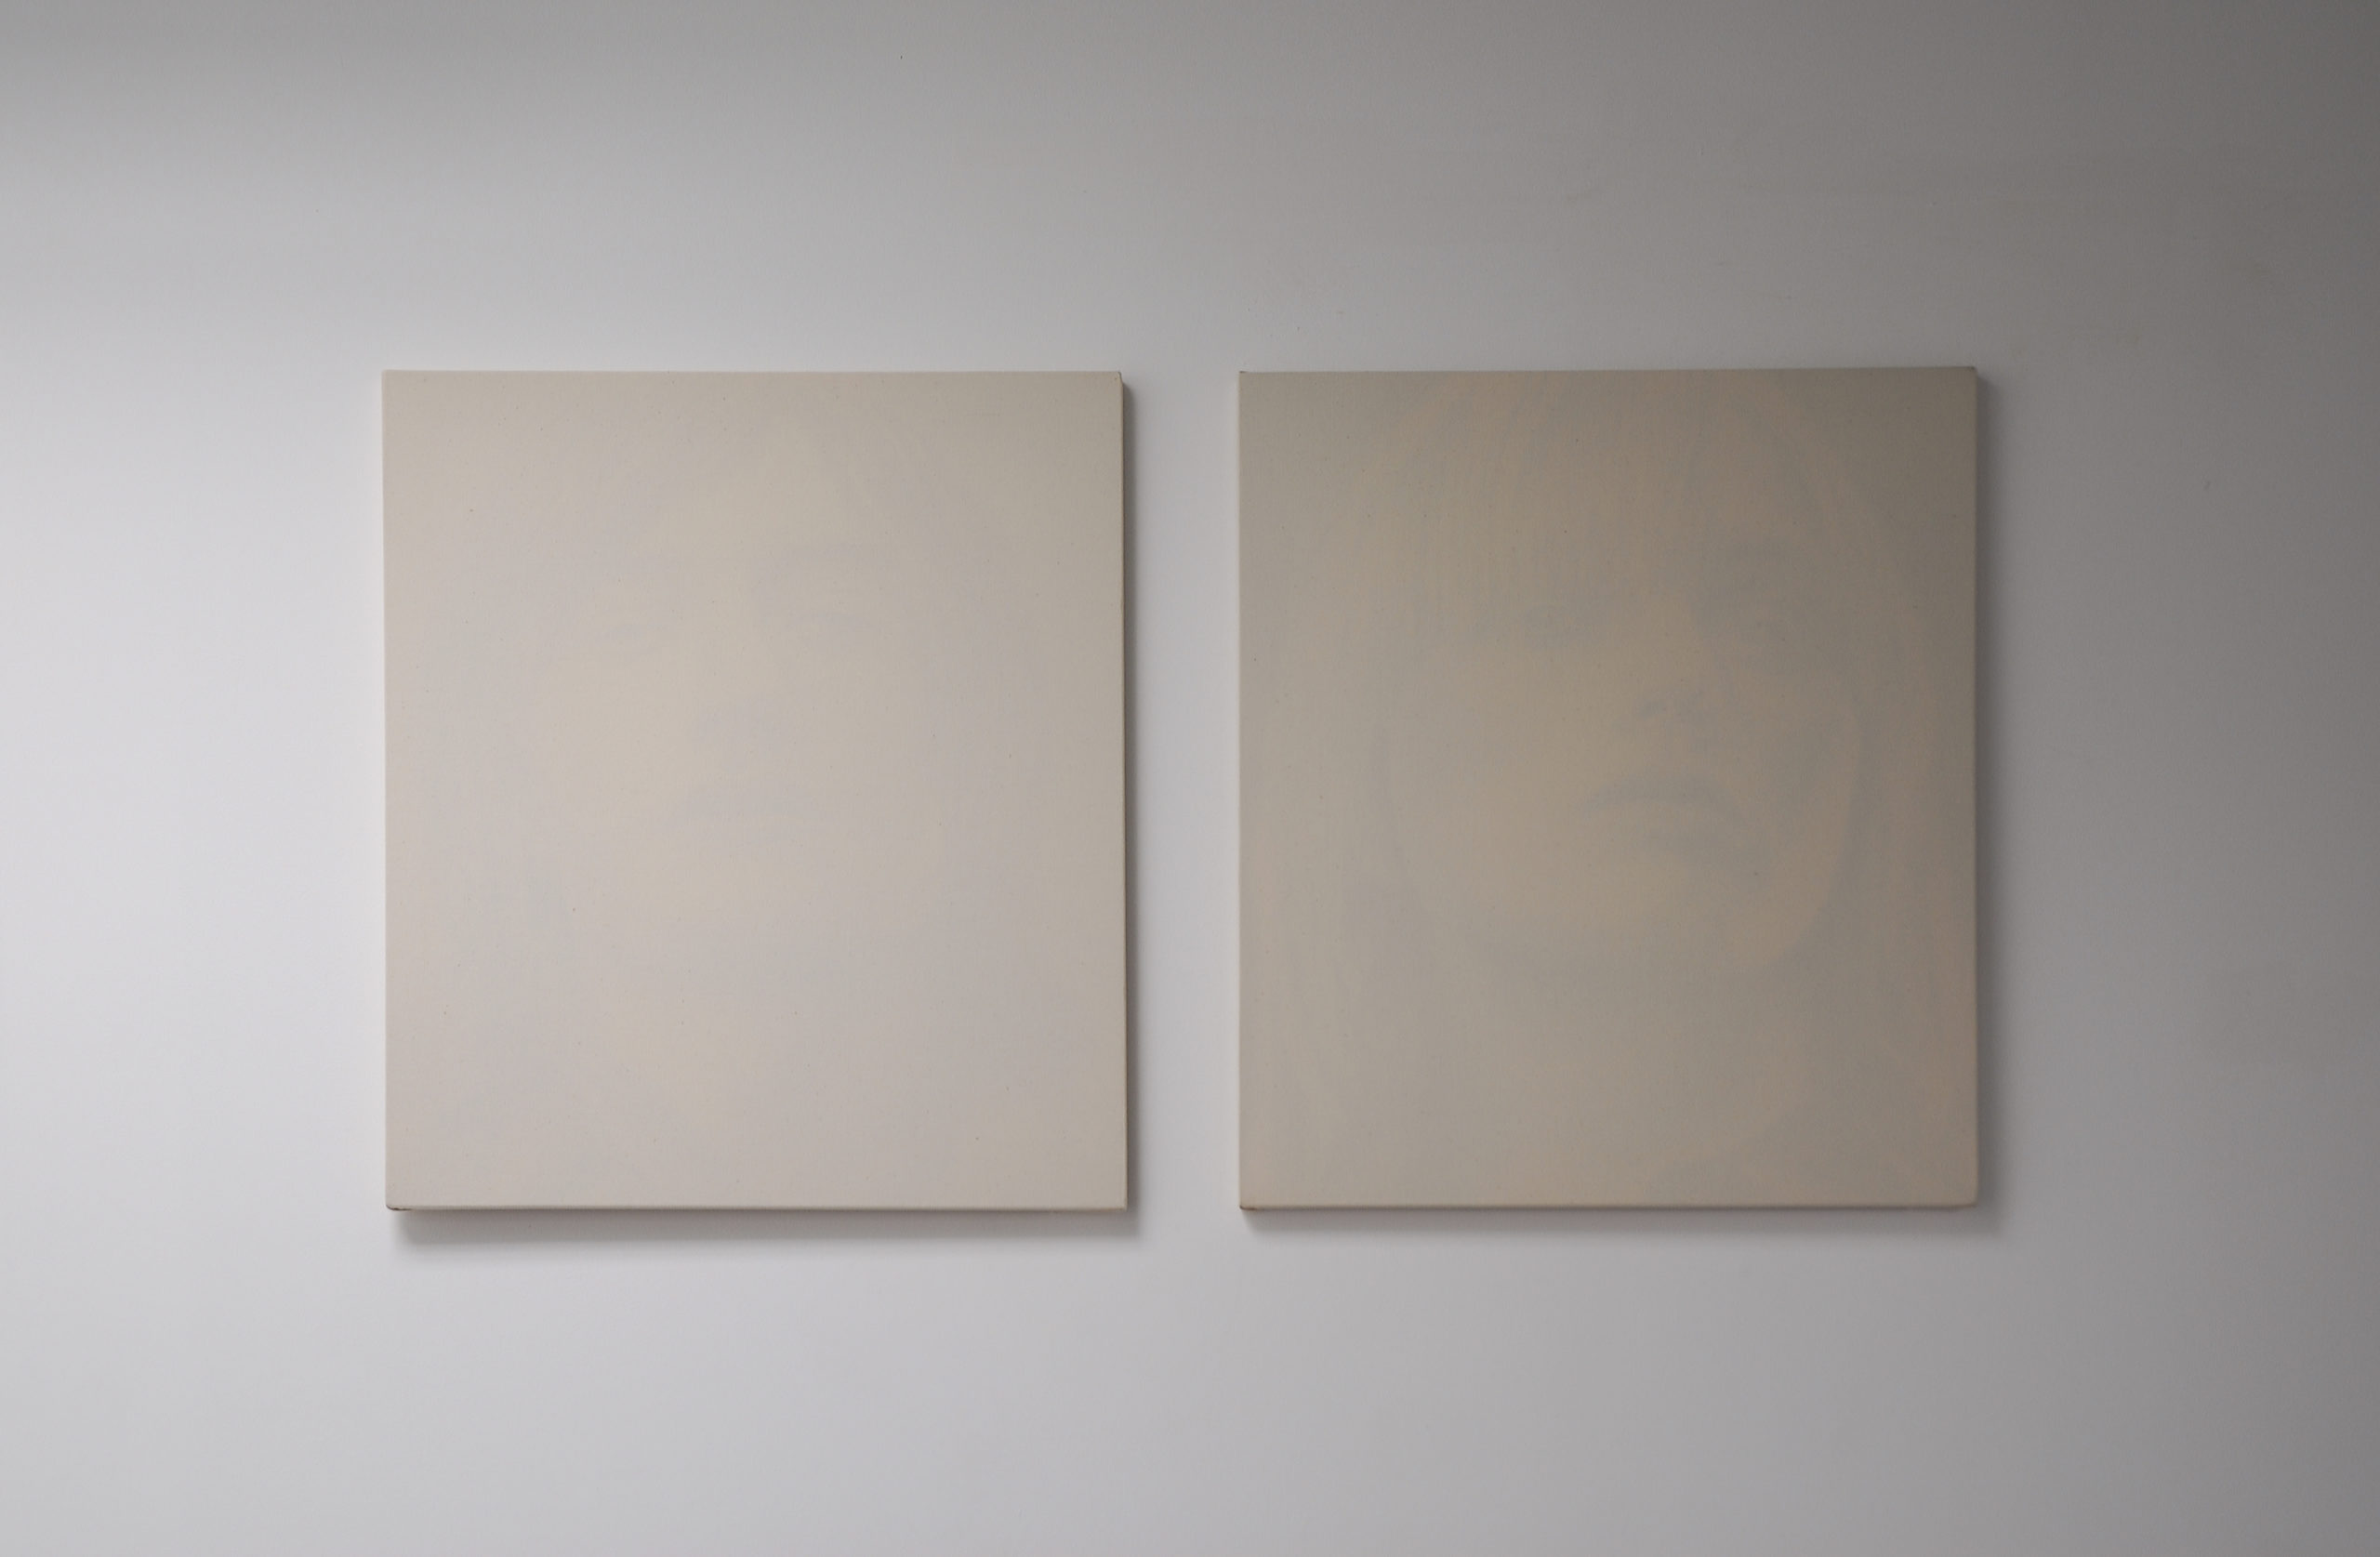 Peter Scott, Untitled (Model #2), 2008, acrylic on reverse of cotton, 66 x 56 cm – Untitled (Model #3), 2008, acrylic on reverse of cotton, 66 x 56 cm